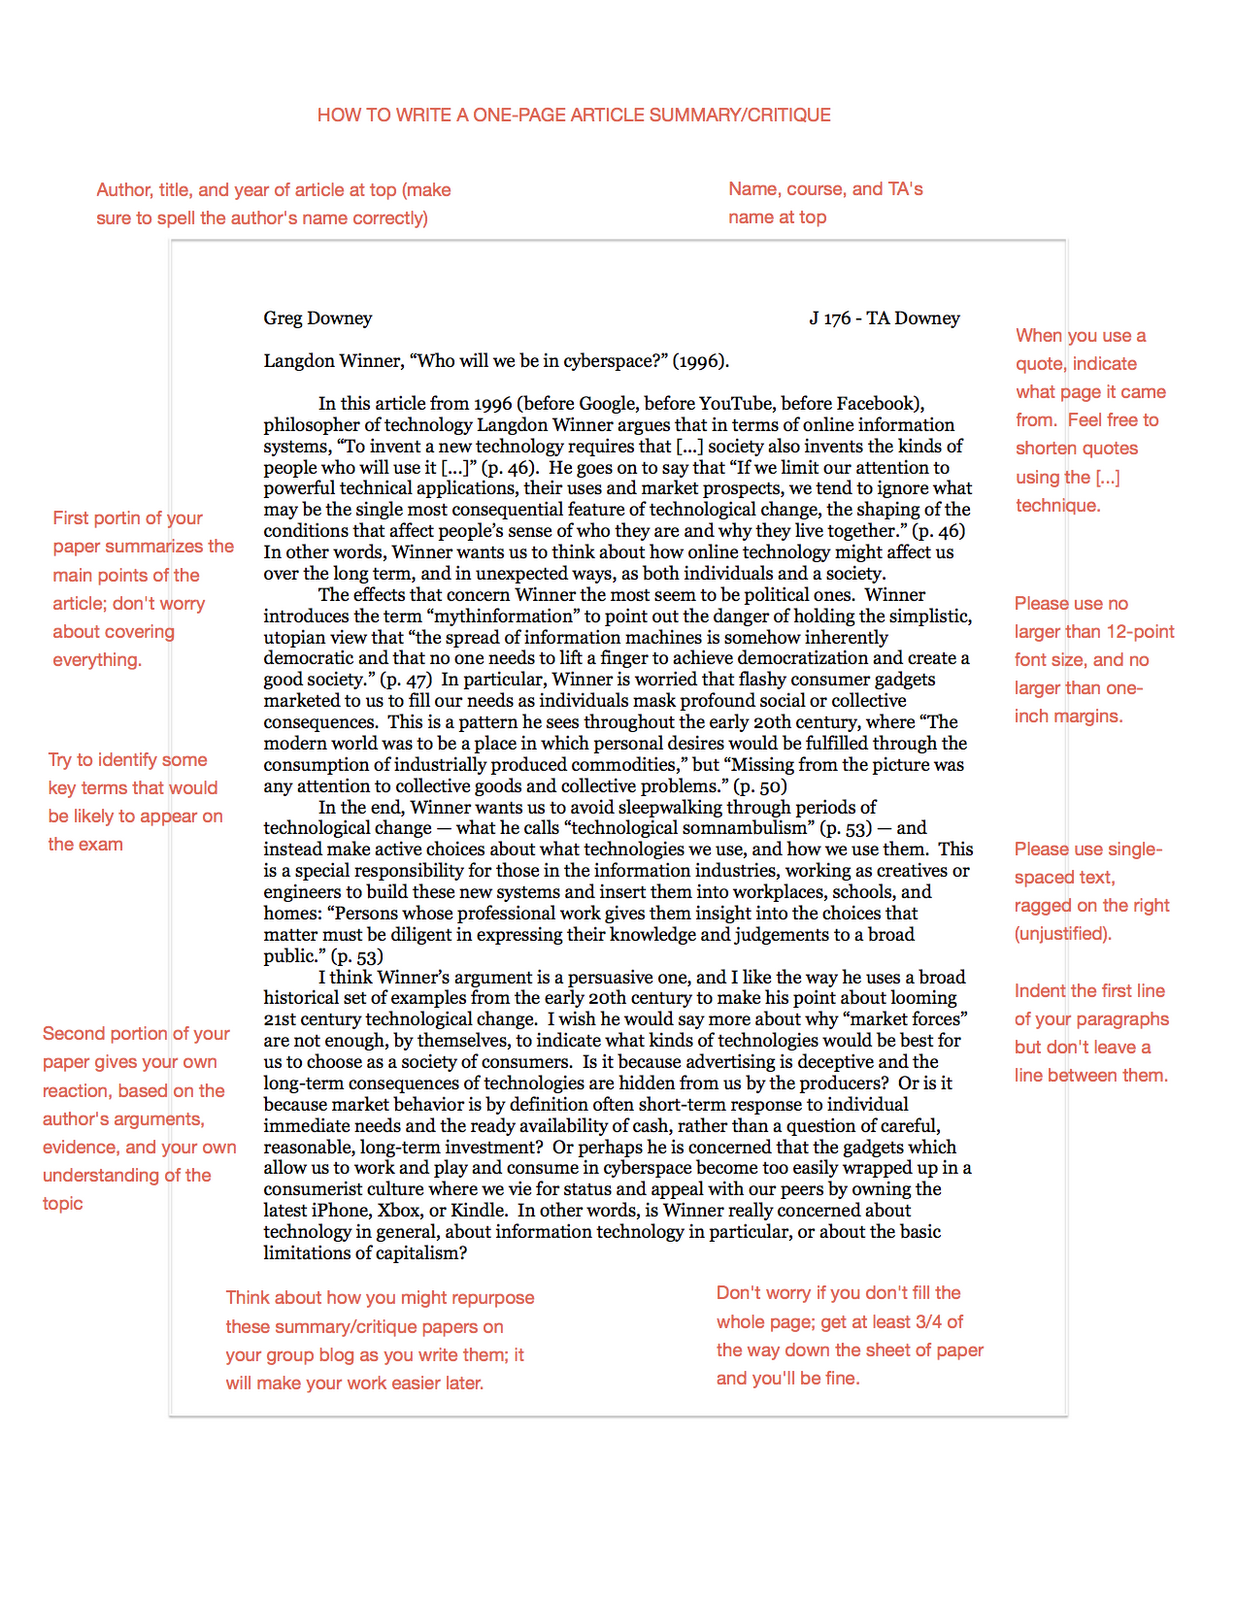 How To Write An Article Title - arxiusarquitectura